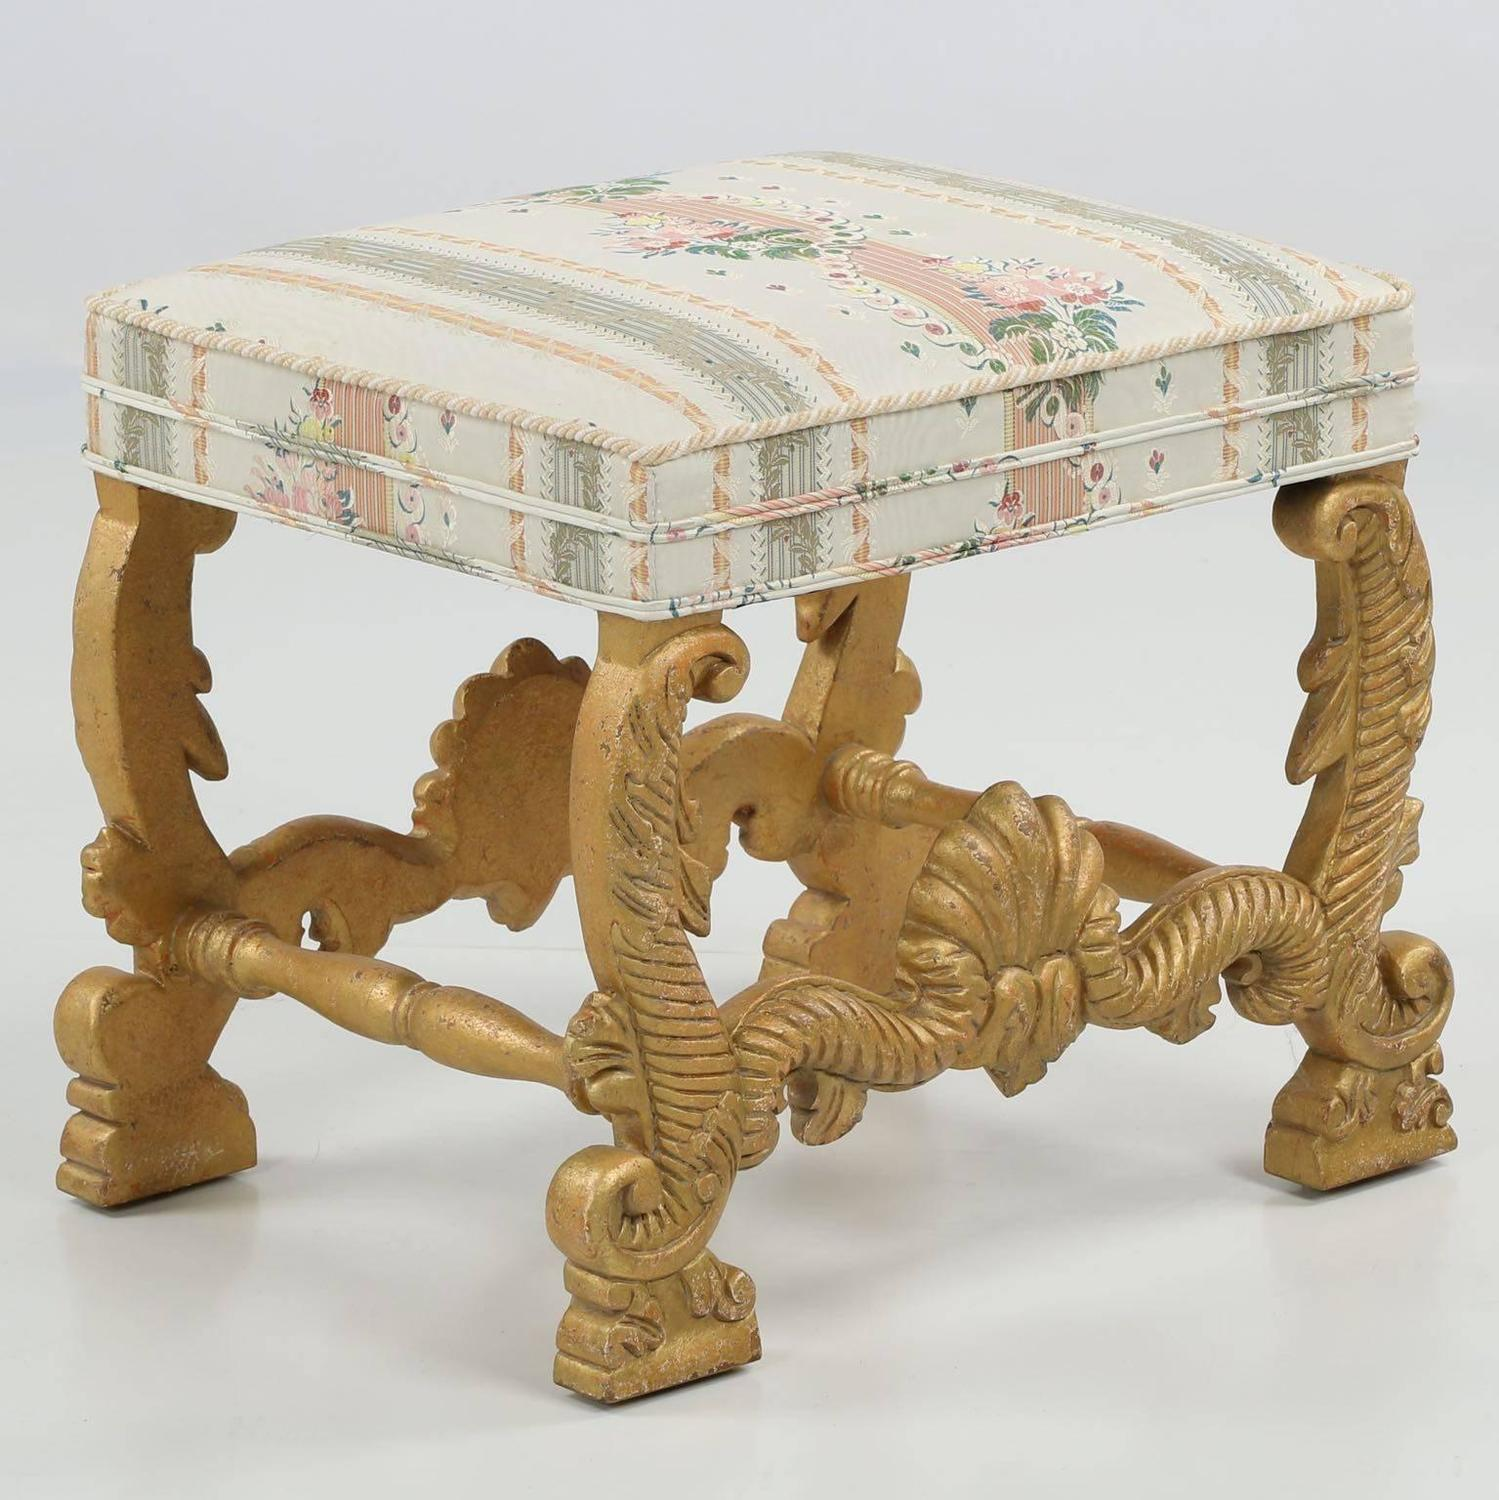 minton spidell chairs chair cover rentals in chicago empire style carved giltwood foot stool